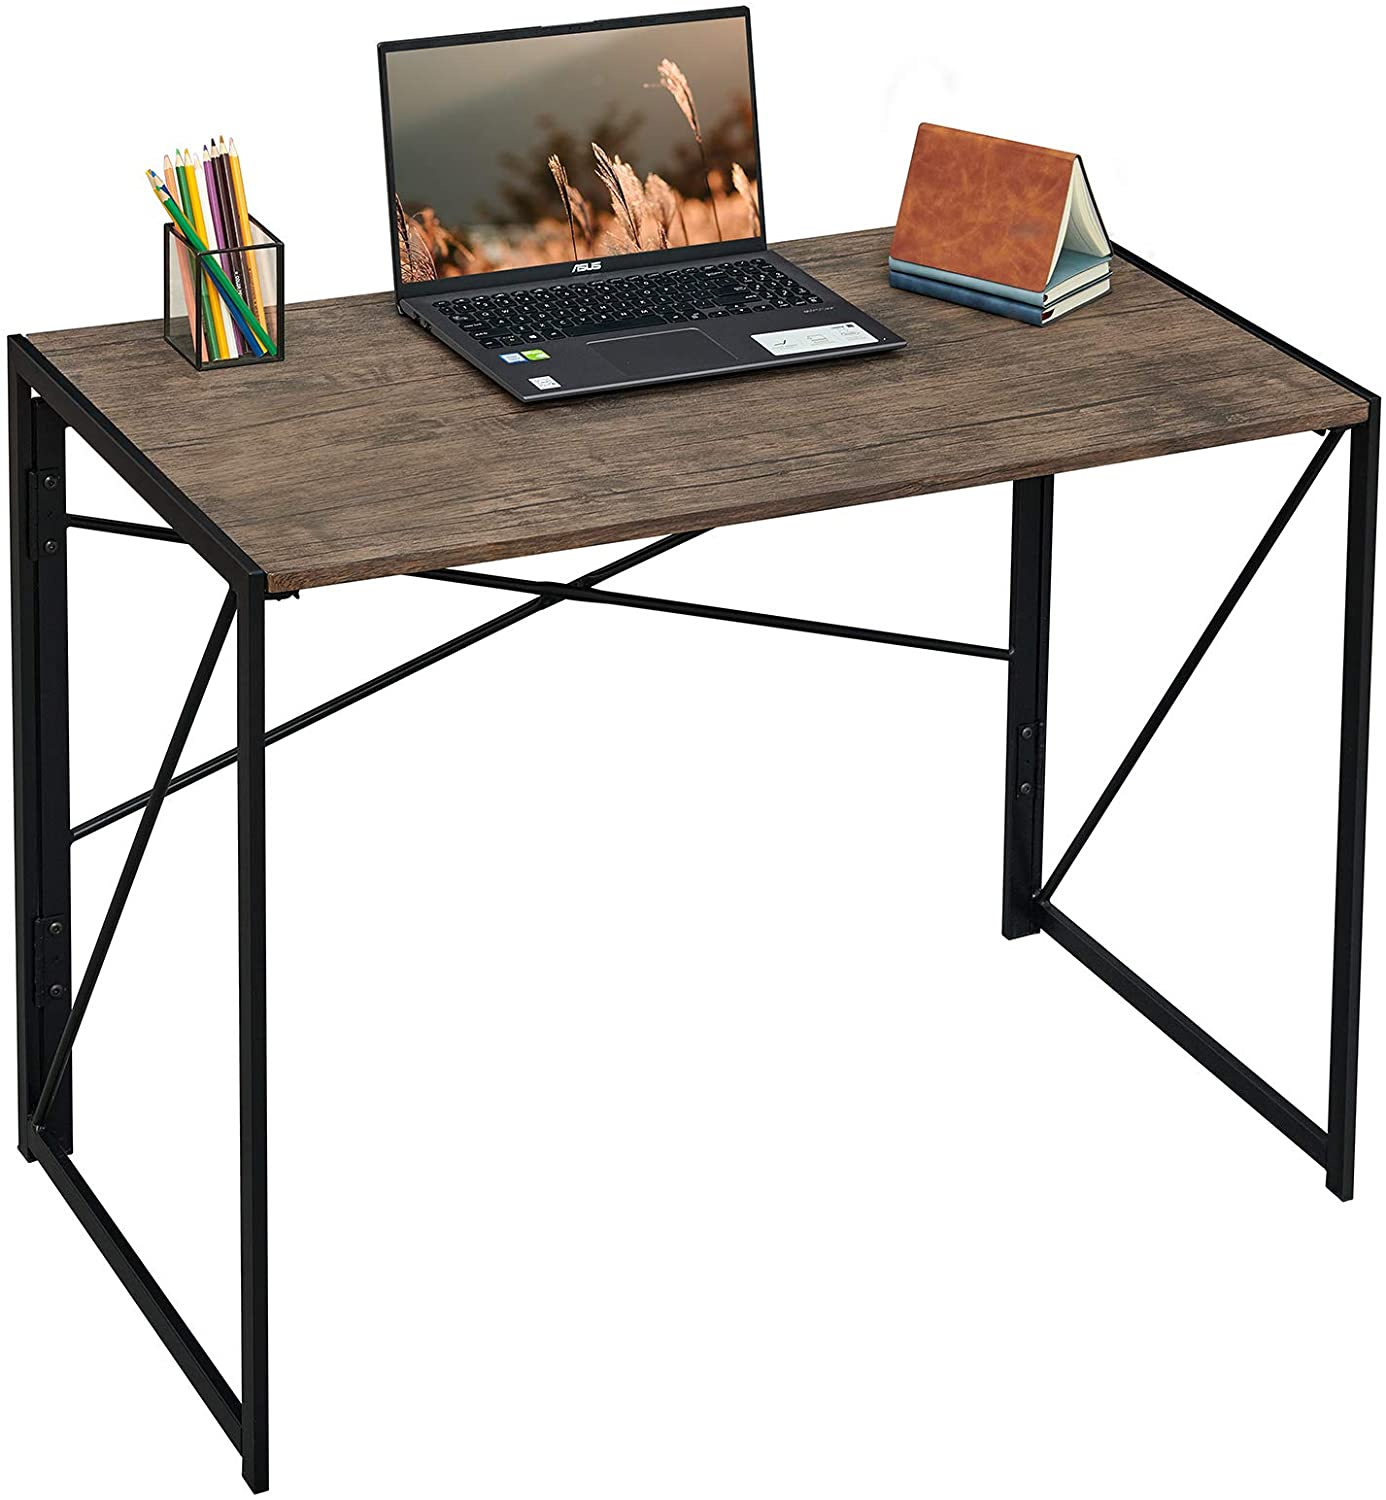 Coavas Folding Desk No Oakland Mall Assembly Required Writing Computer New Orleans Mall 40